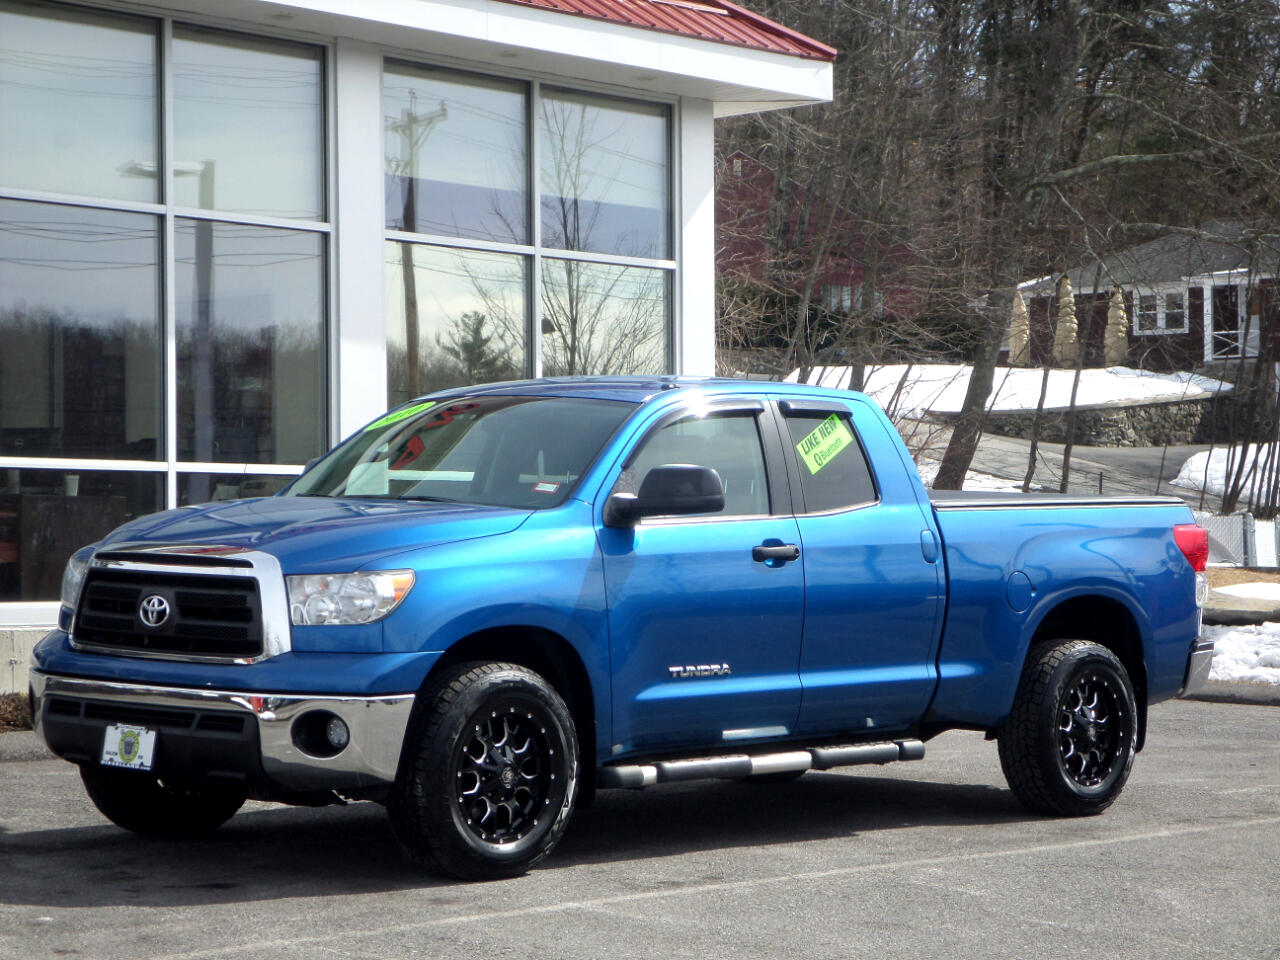 2010 Toyota Tundra 4WD Truck DOUBLE CAB ONLY 98,480 MILES !!!